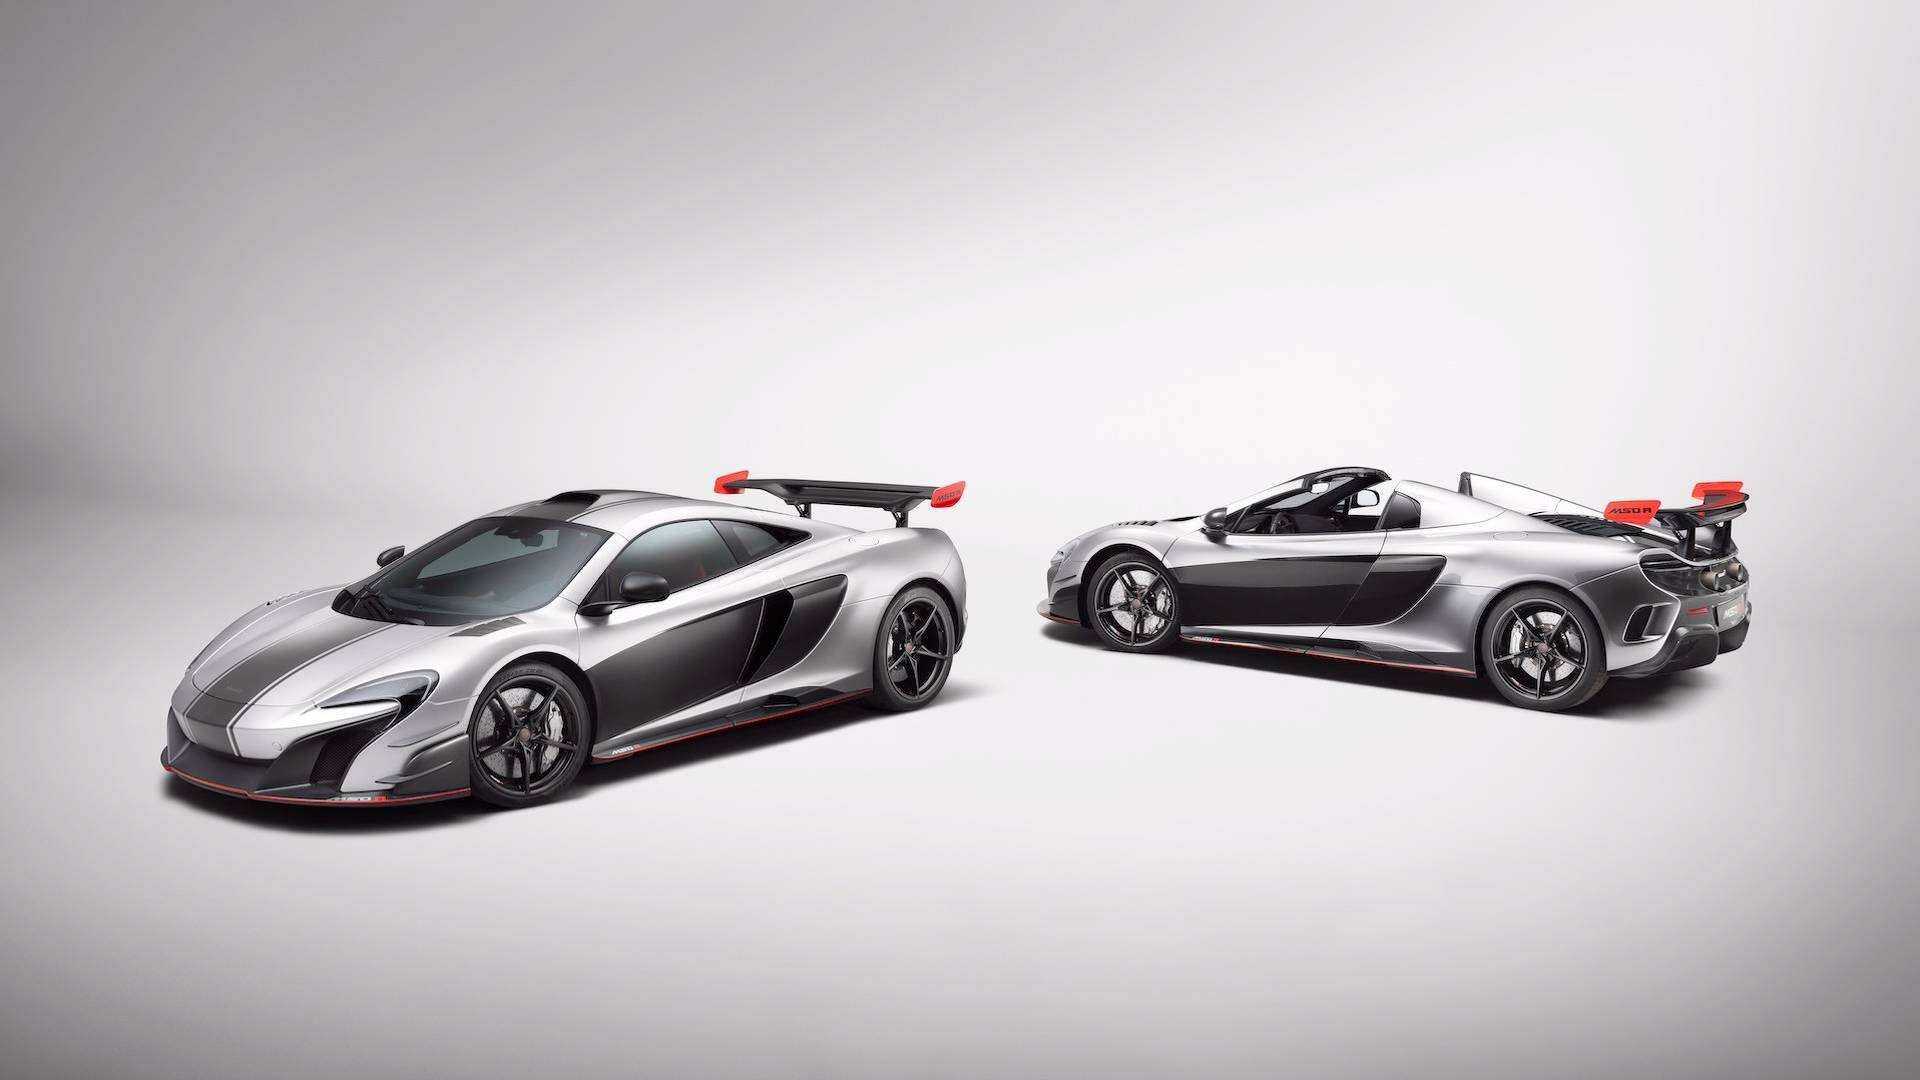 https://icdn-4.motor1.com/images/mgl/4WkNq/s1/mclaren-mso-r-coupe-spider.jpg